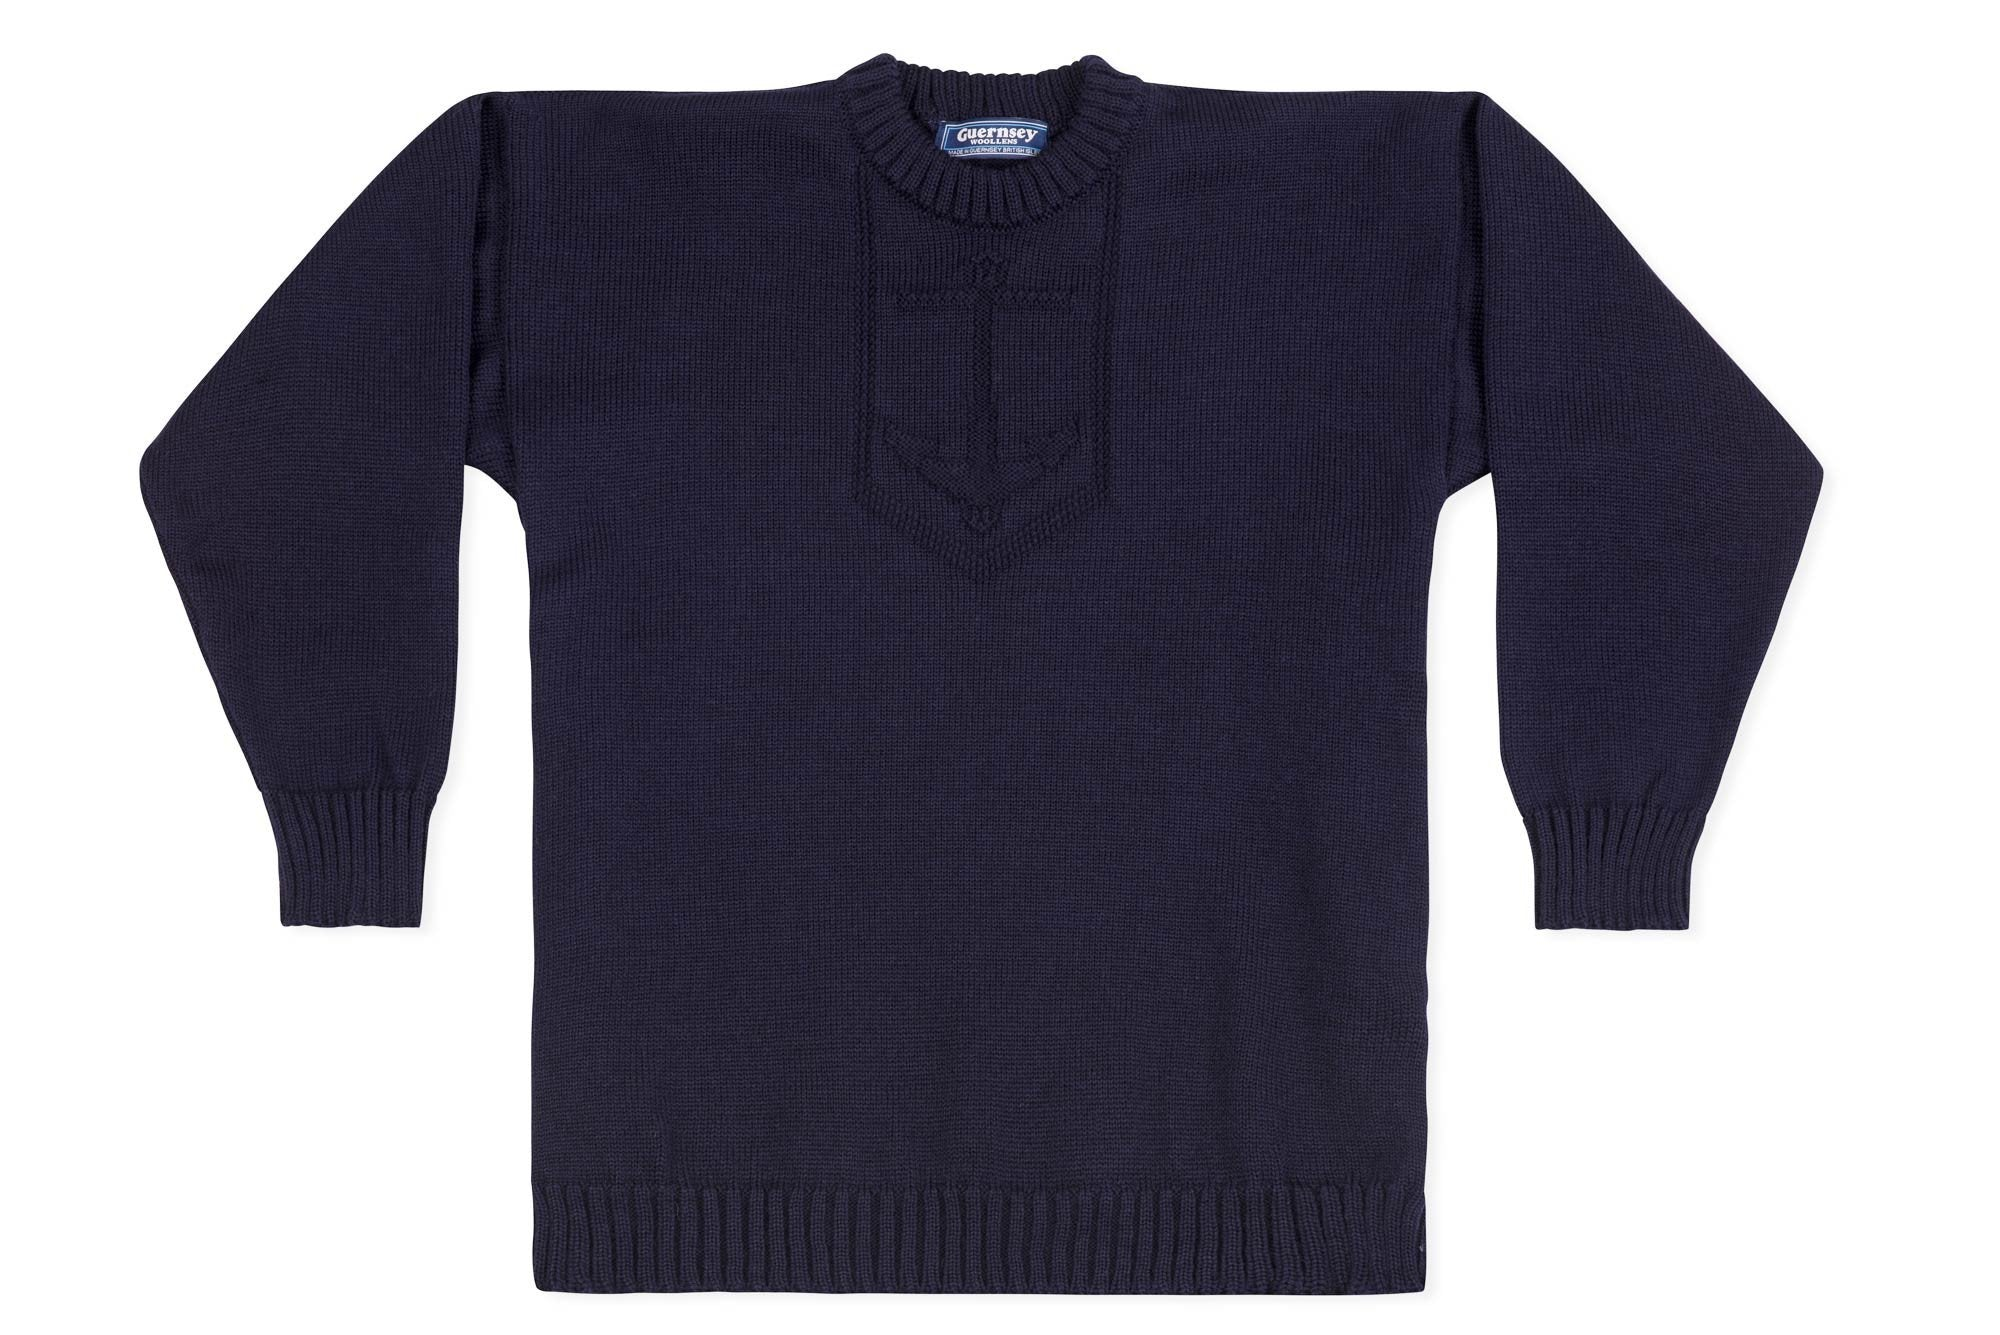 2d20c6cde33f1 Jersey Crew Neck Jumper With Anchor Motif In Navy-Guernsey Knitwear-Guernsey  Jumper